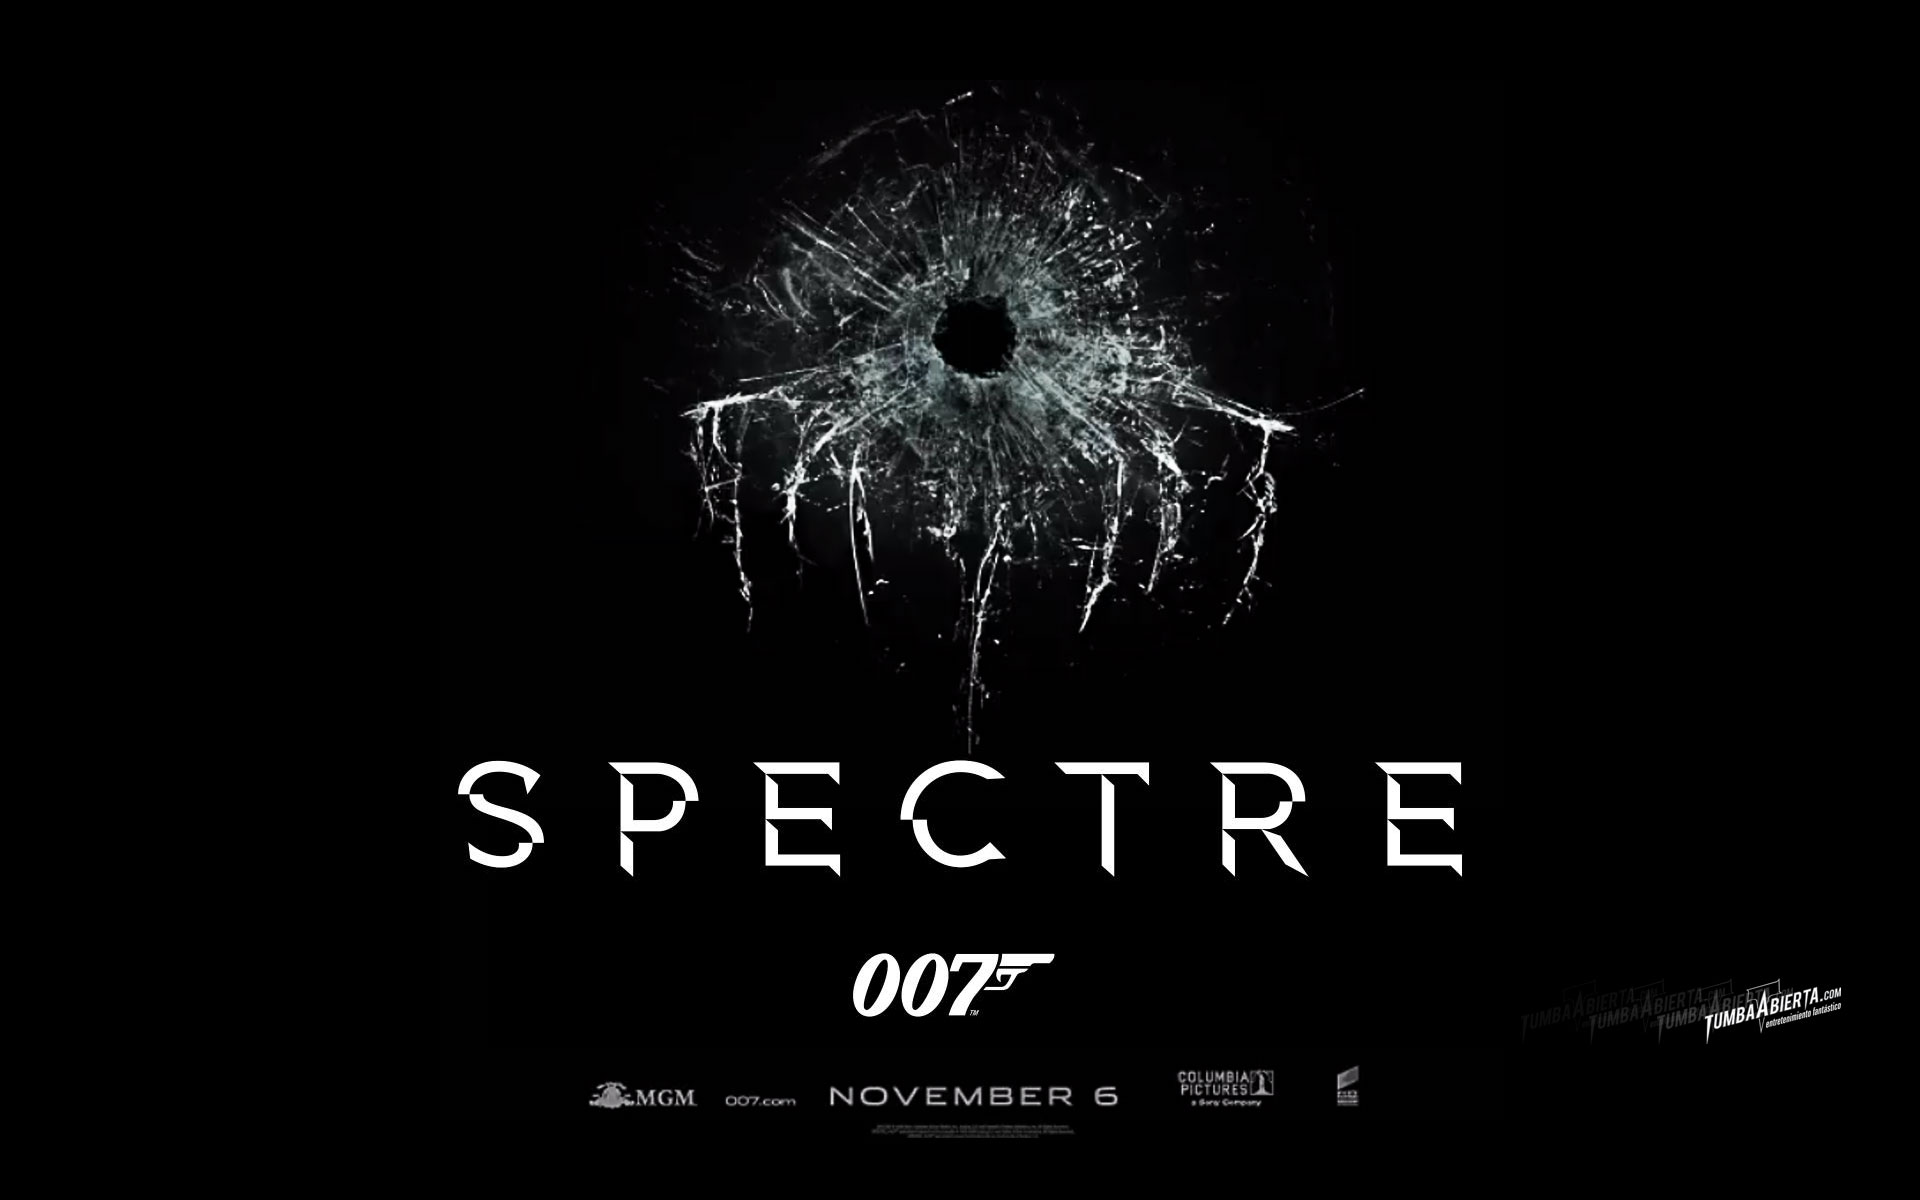 James_Bond_Spectre_007_film_película_Daniel_Craig_Sam_Mendes_2015